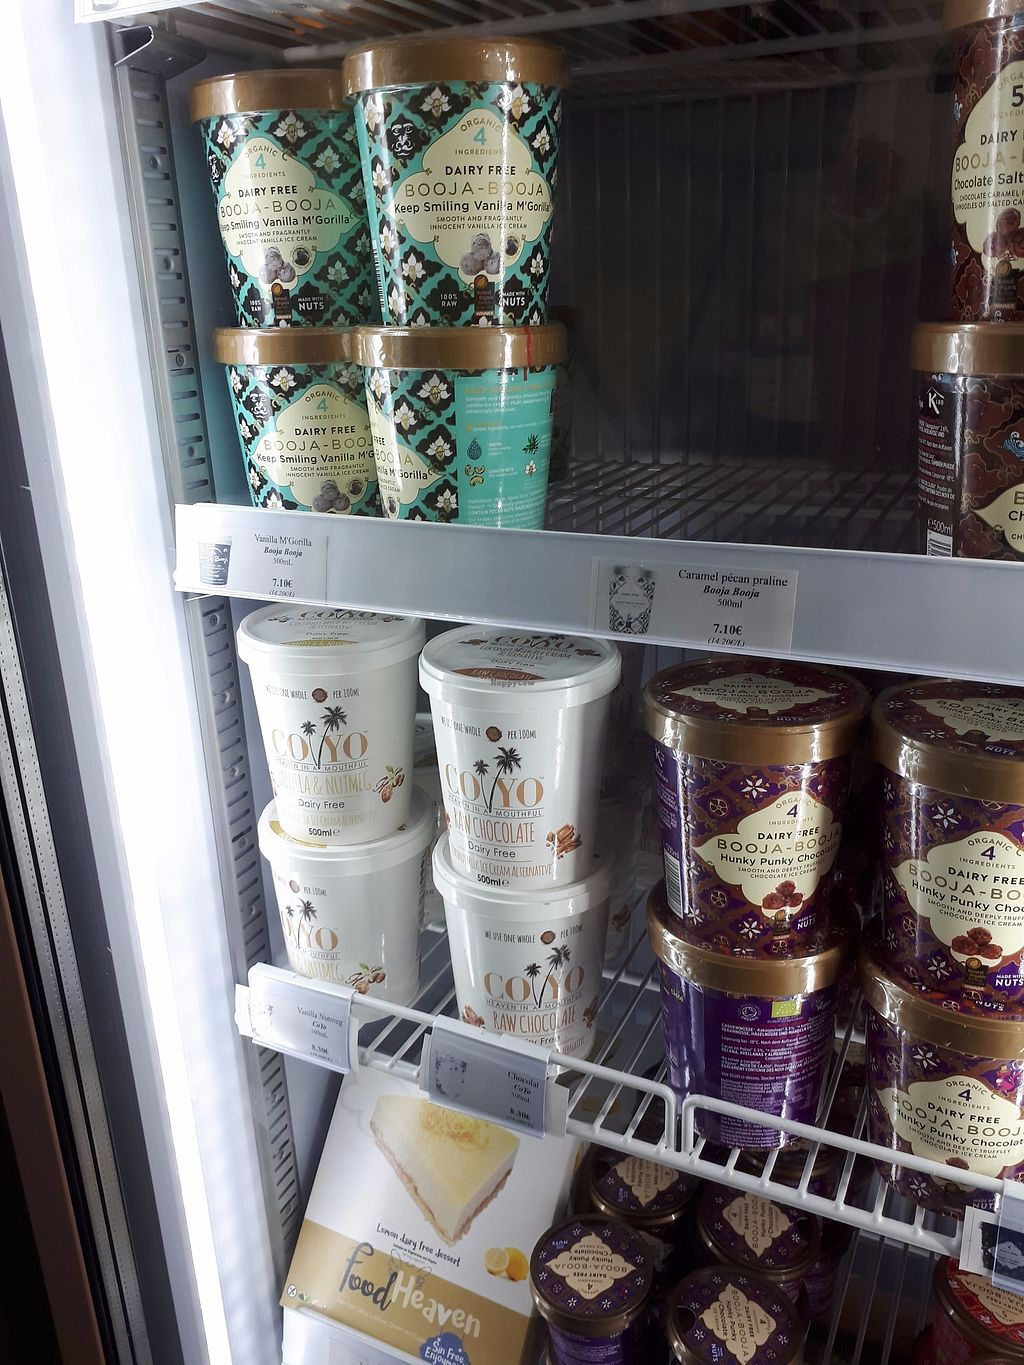 """Photo of Vegetal et Vous  by <a href=""""/members/profile/Tea_and_Sparkles"""">Tea_and_Sparkles</a> <br/>freezer- ice cream and frozen lemon cheezecake! <br/> September 10, 2017  - <a href='/contact/abuse/image/57084/302996'>Report</a>"""